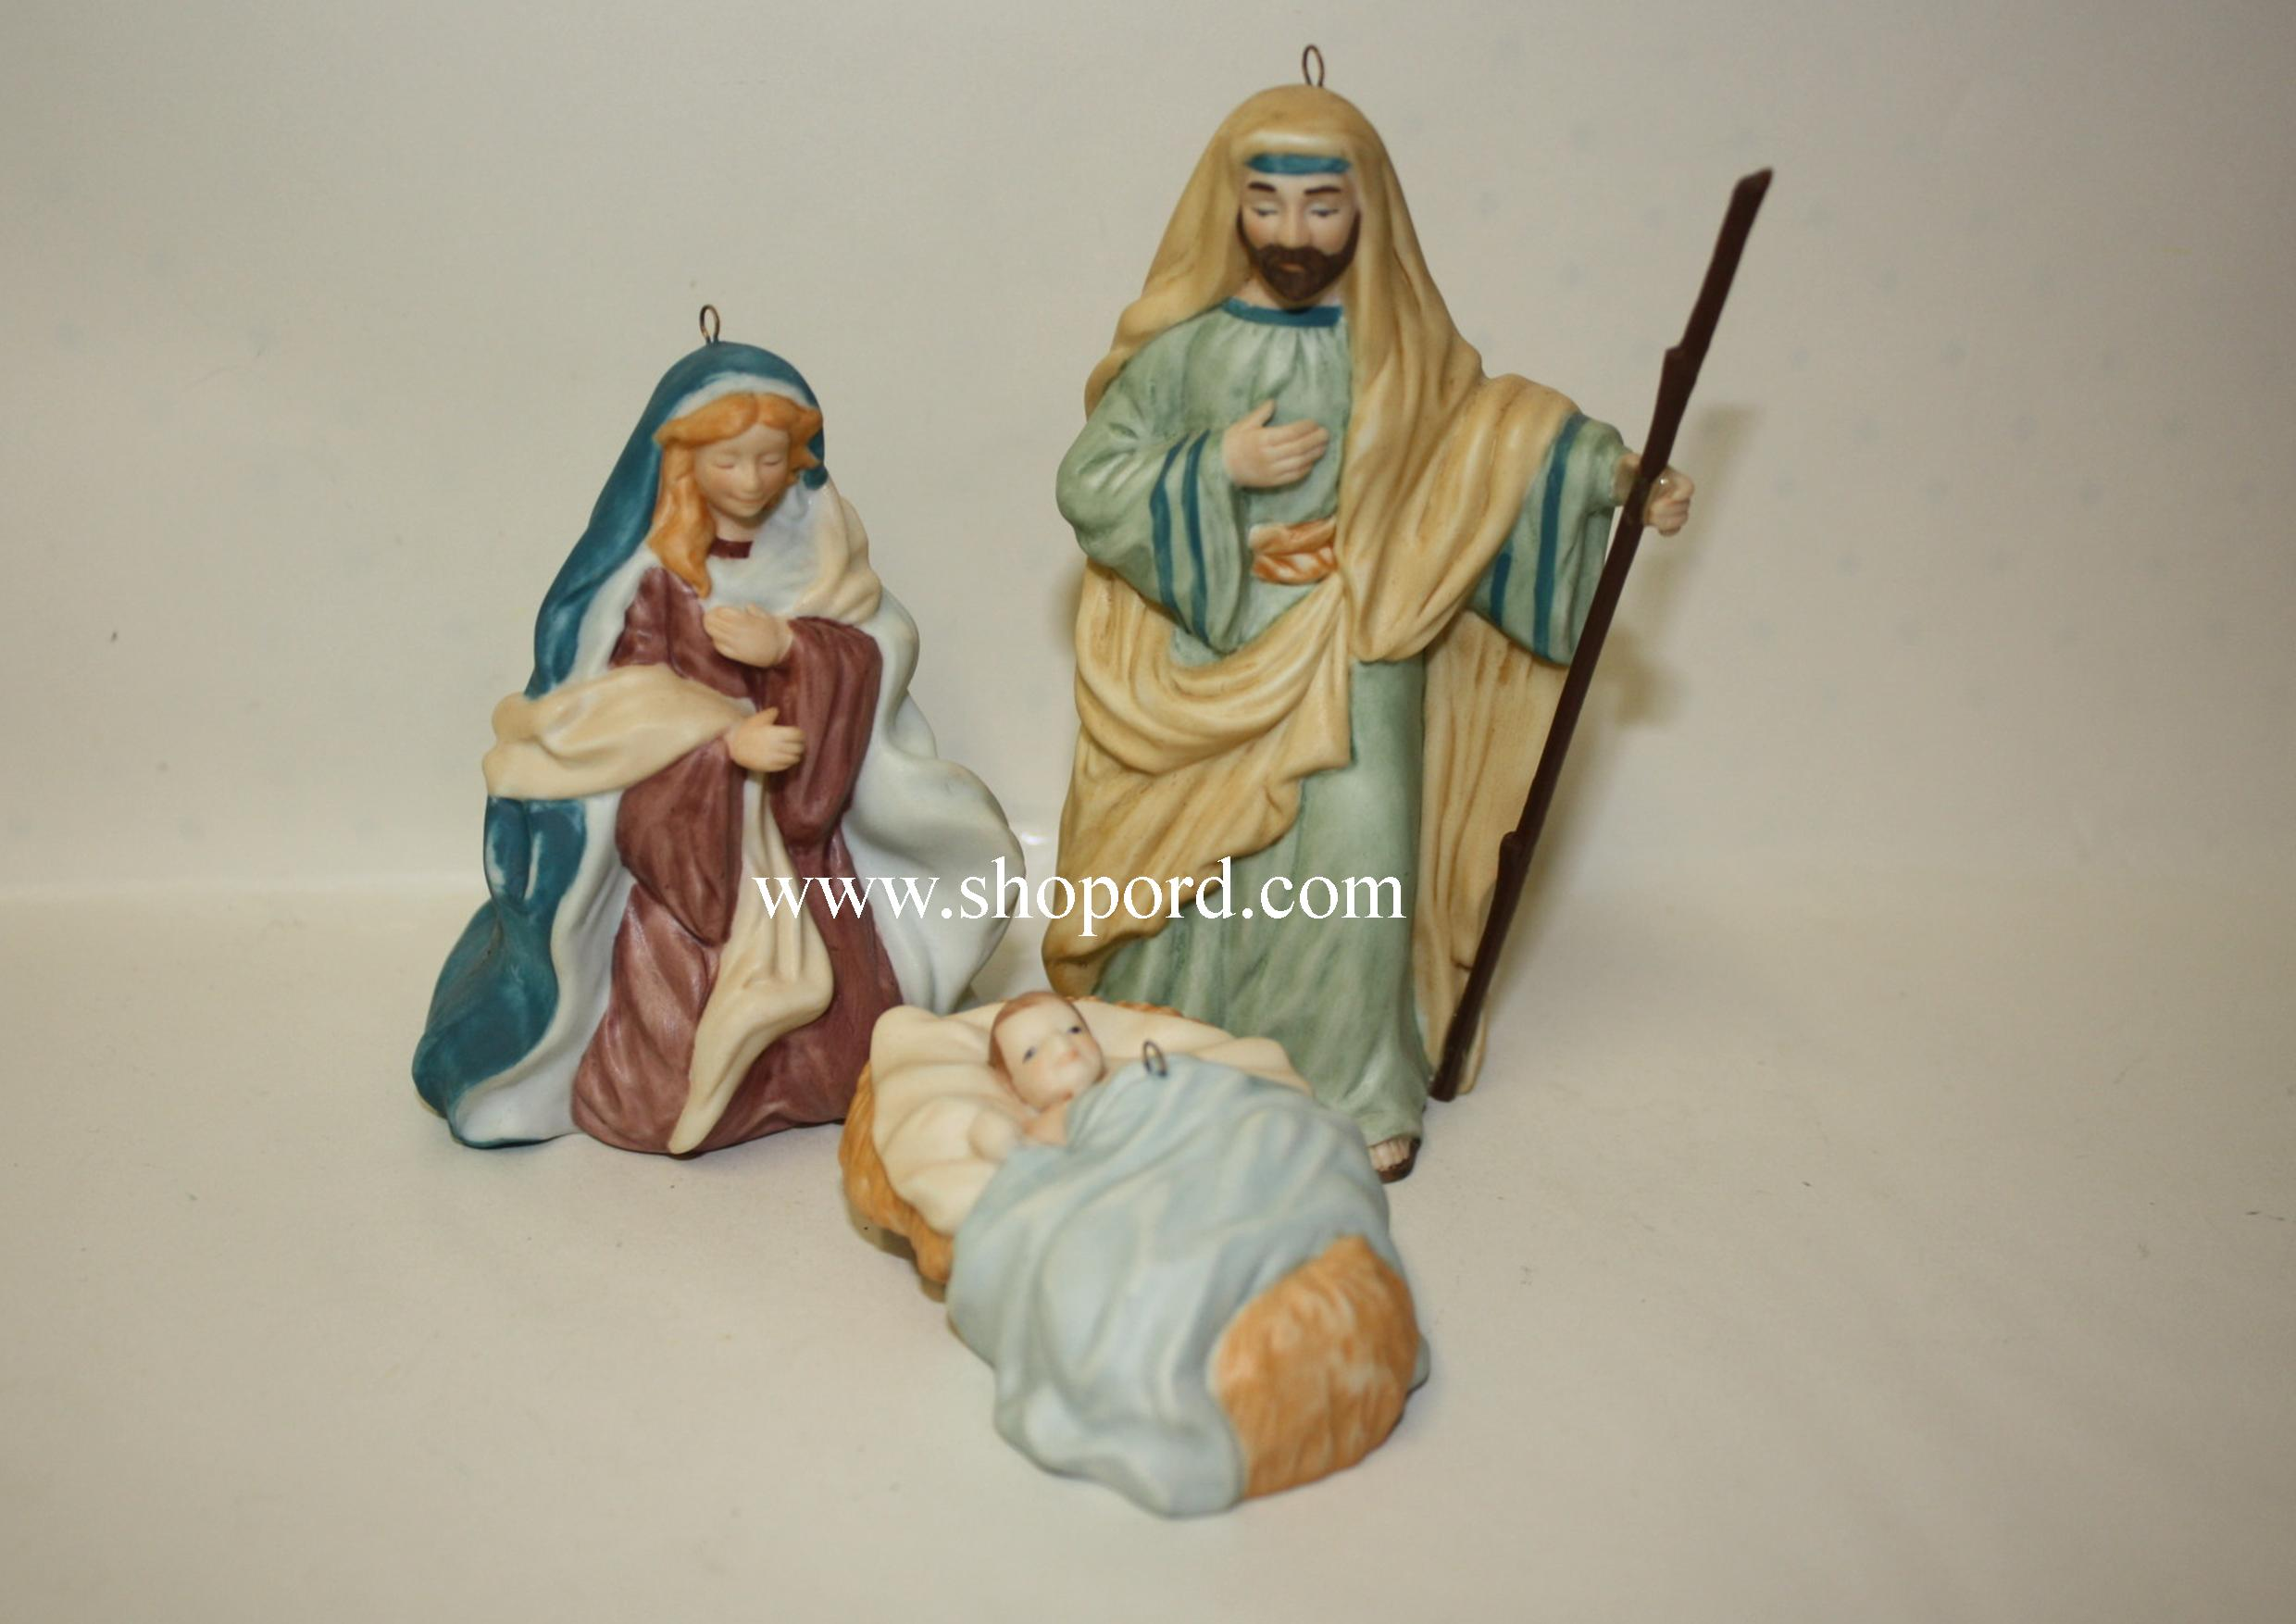 Hallmark 1998 The Holy Family Ornament Set of 3 Blessed Nativity Collection QX6523 Box Has Storage Wear